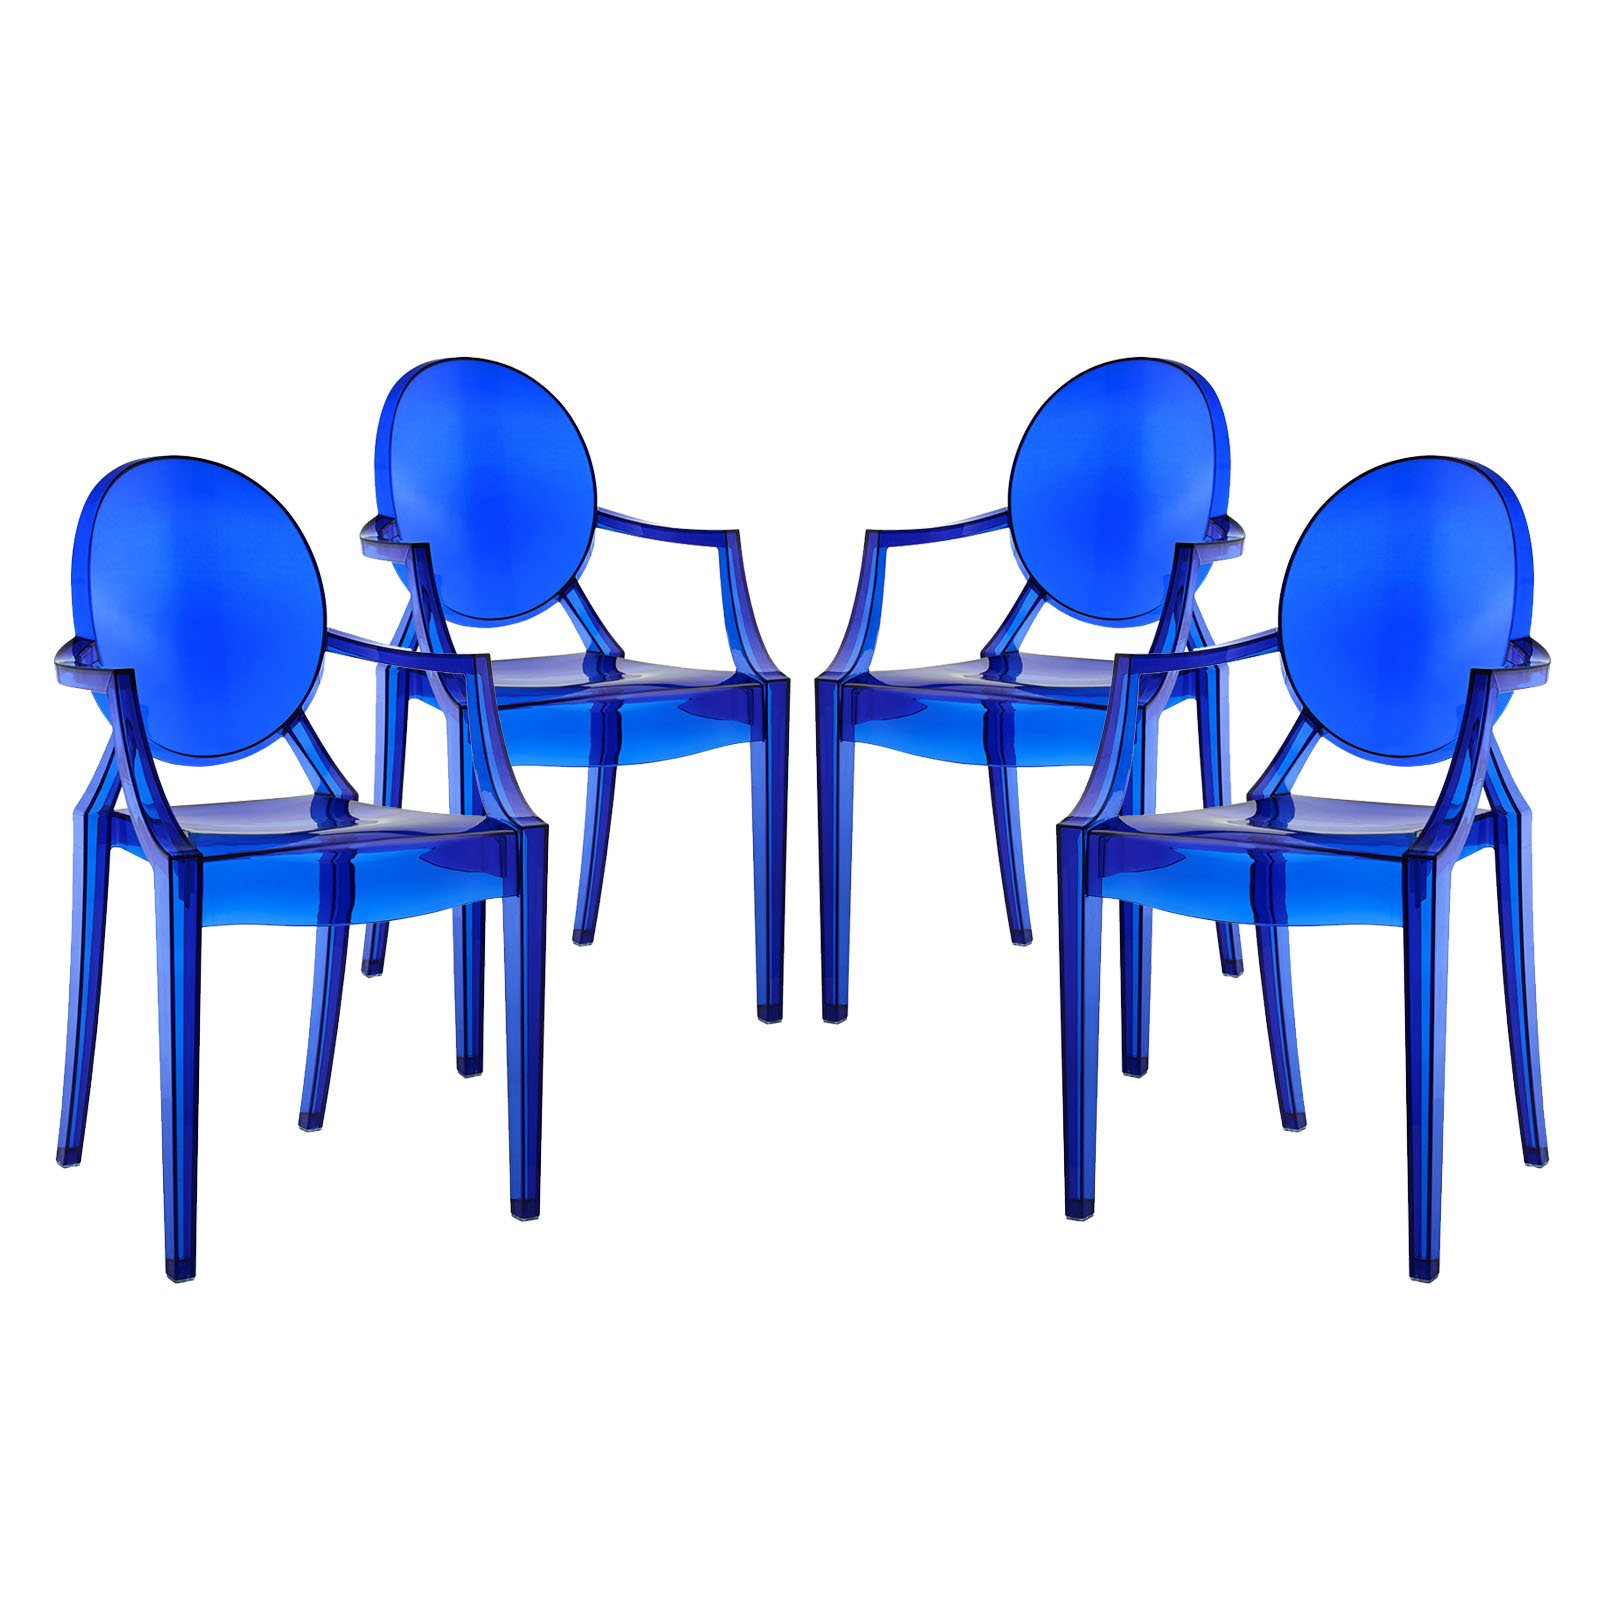 Modway Casper Modern Acrylic Dining Armchairs in Blue - Set of 4 by Modway